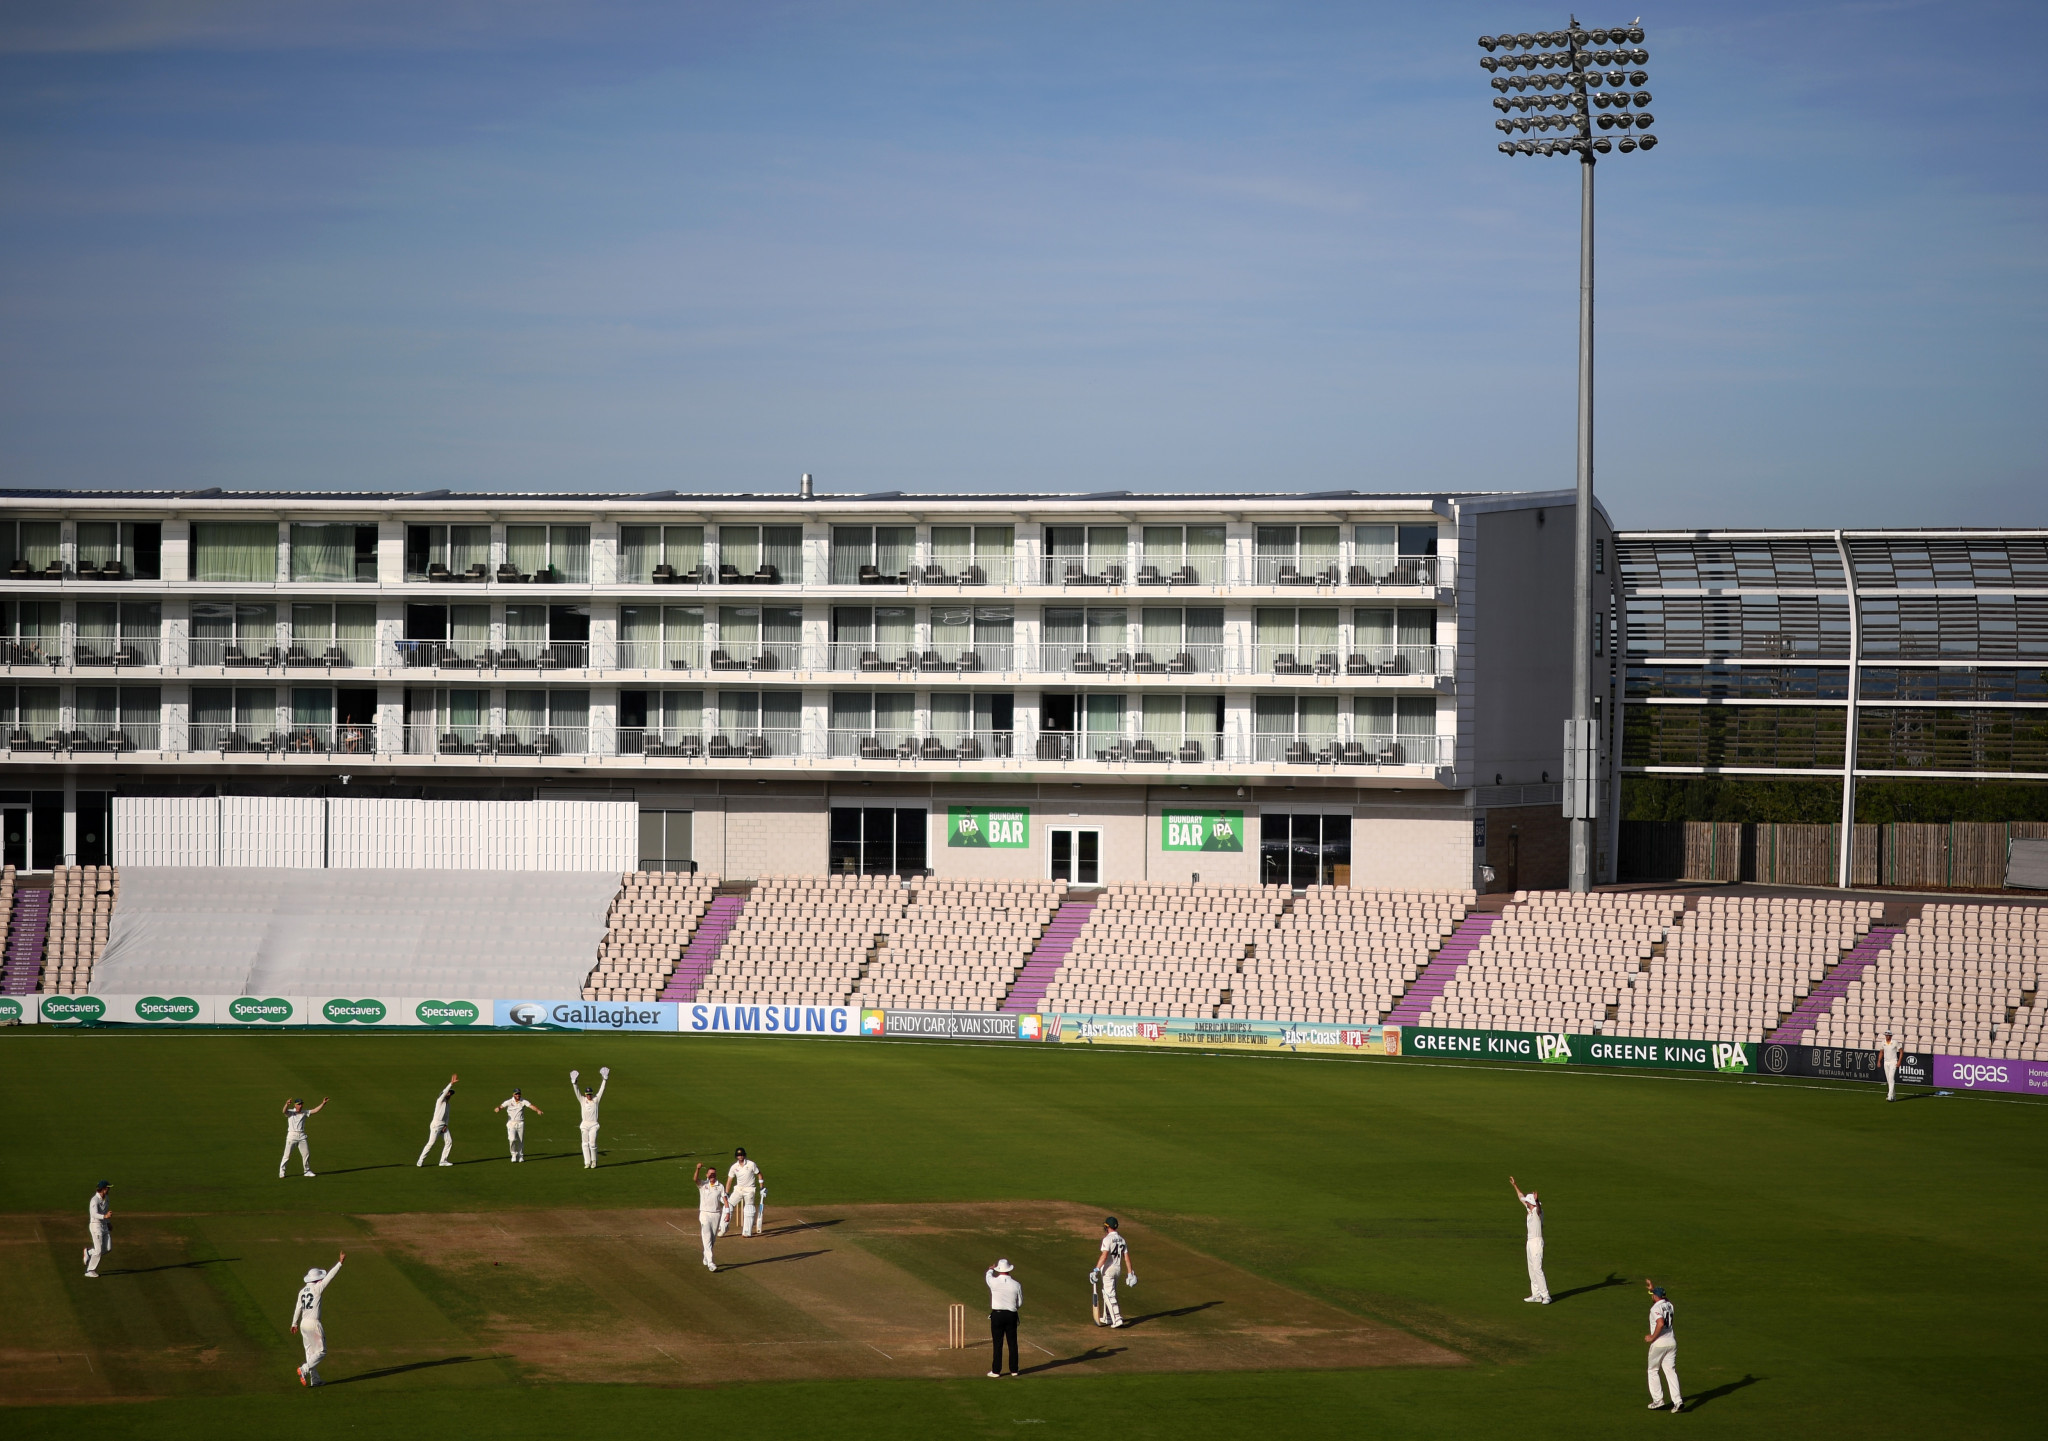 It England, it is hoped that international cricket can soon be played at venues with on-site hotels like the Ageas Bowl ©Getty Images